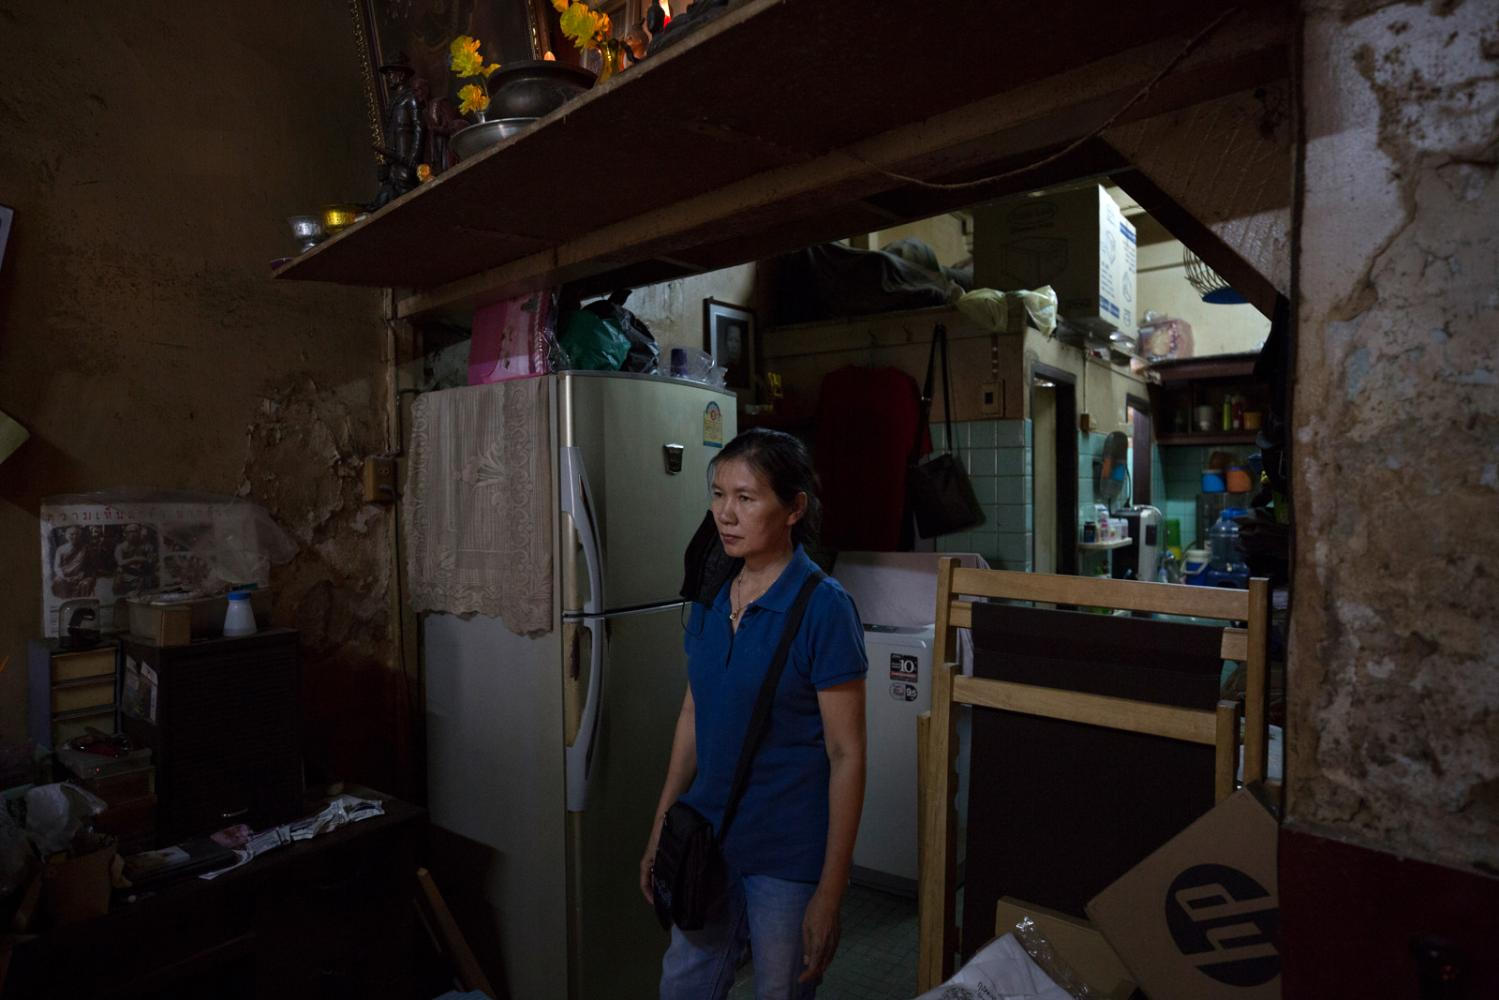 Sangjun Thimachai, 55, stands in her house which saw a dengue fever outbreak in September 2019 with 4 of her family members, including herself, getting the disease. Her husband Yotsathon Wongjiragorn, 58, also contracted the disease and after several misdiagnosis's died in hospital. Bangkok, Thailand - October 2019